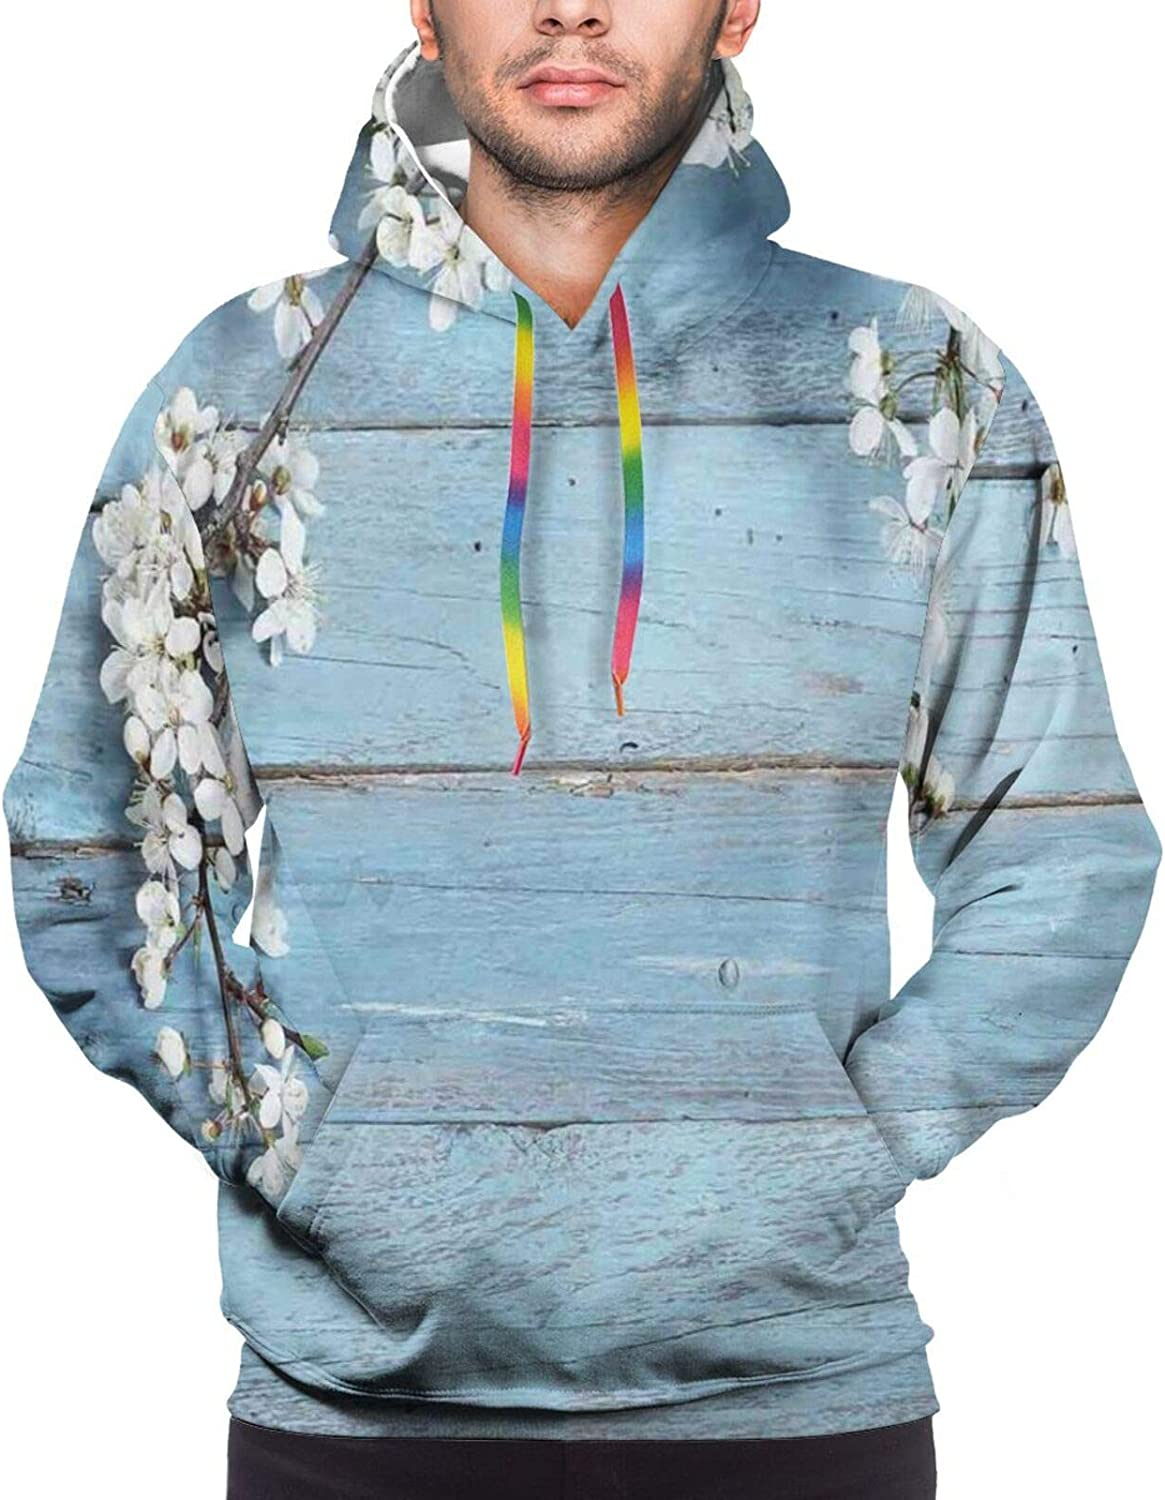 Men's Hoodies Sweatshirts,A Branch with Blooming Spring Flowers On Wooden Fragility Symbol of Spring,Small